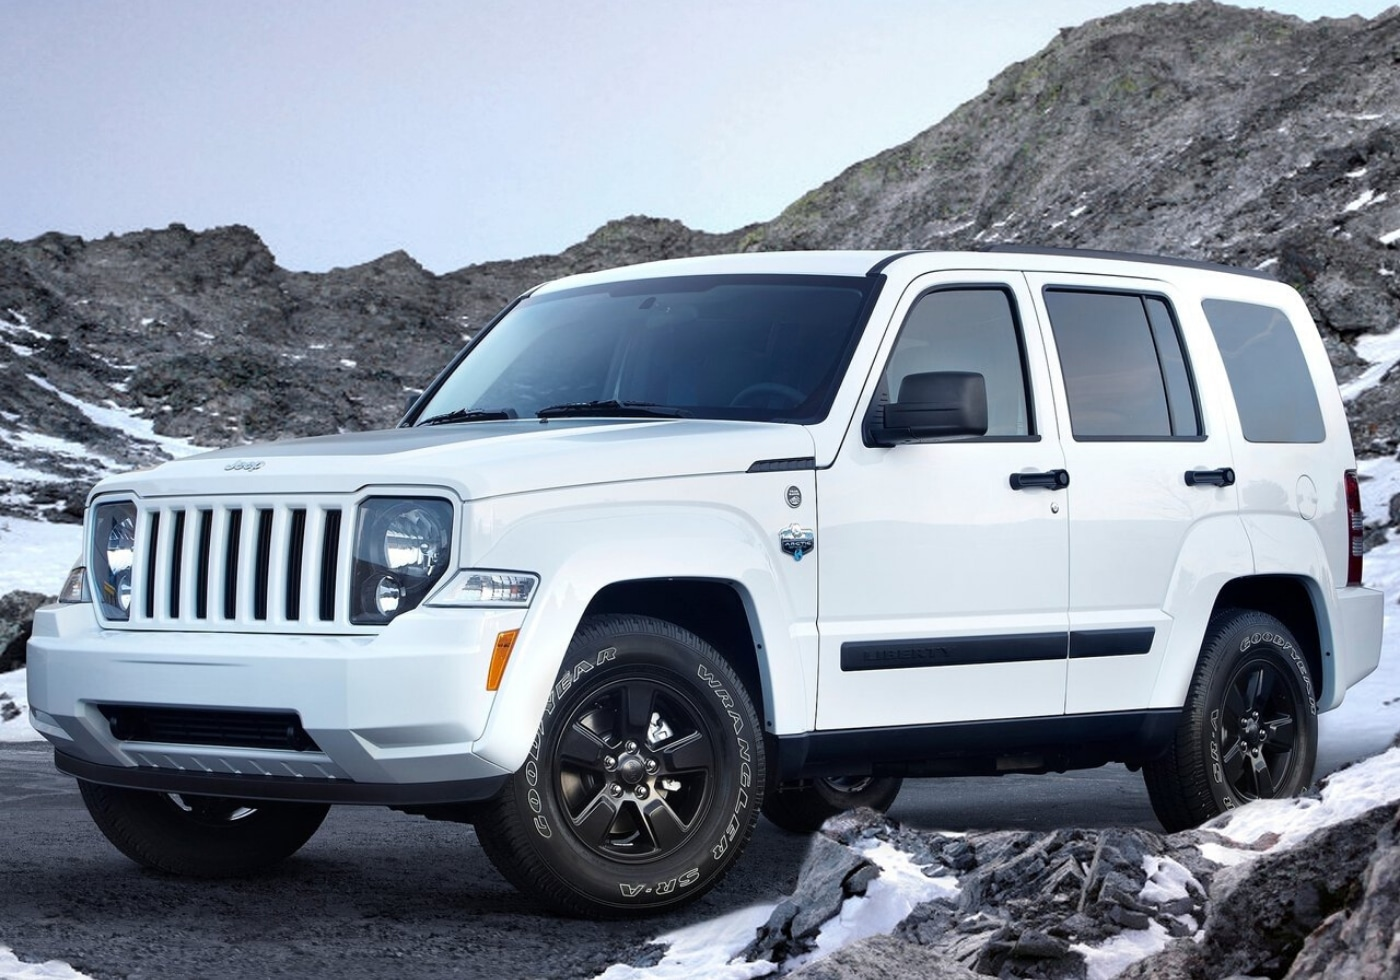 Used White 2012 Jeep Liberty Arctic Edition SUV parked by some snowy rocks with tinted windows